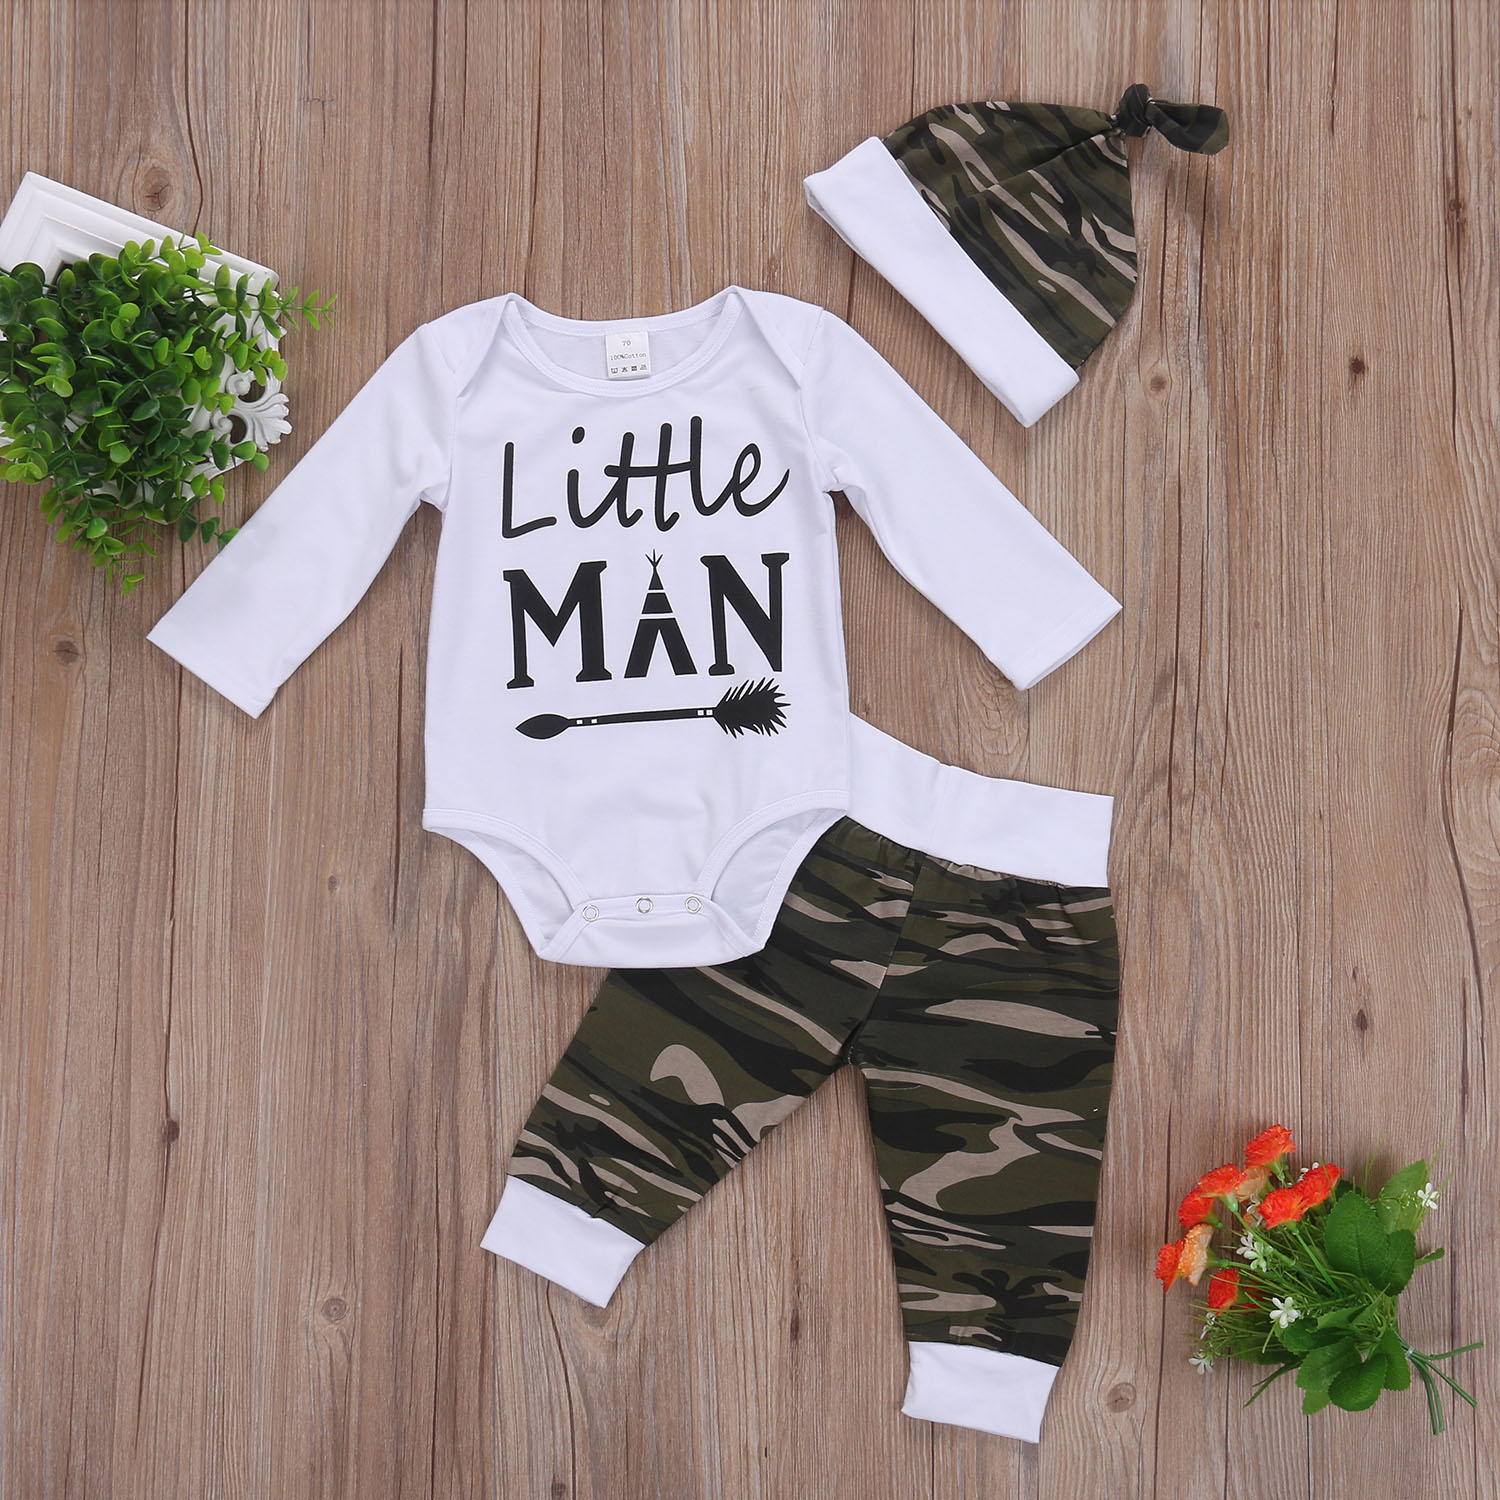 Camo Newborn Baby Boys Outfits 3Pcs Set Tops Romper Long Pants Hat Home Clothes Set 0-18M